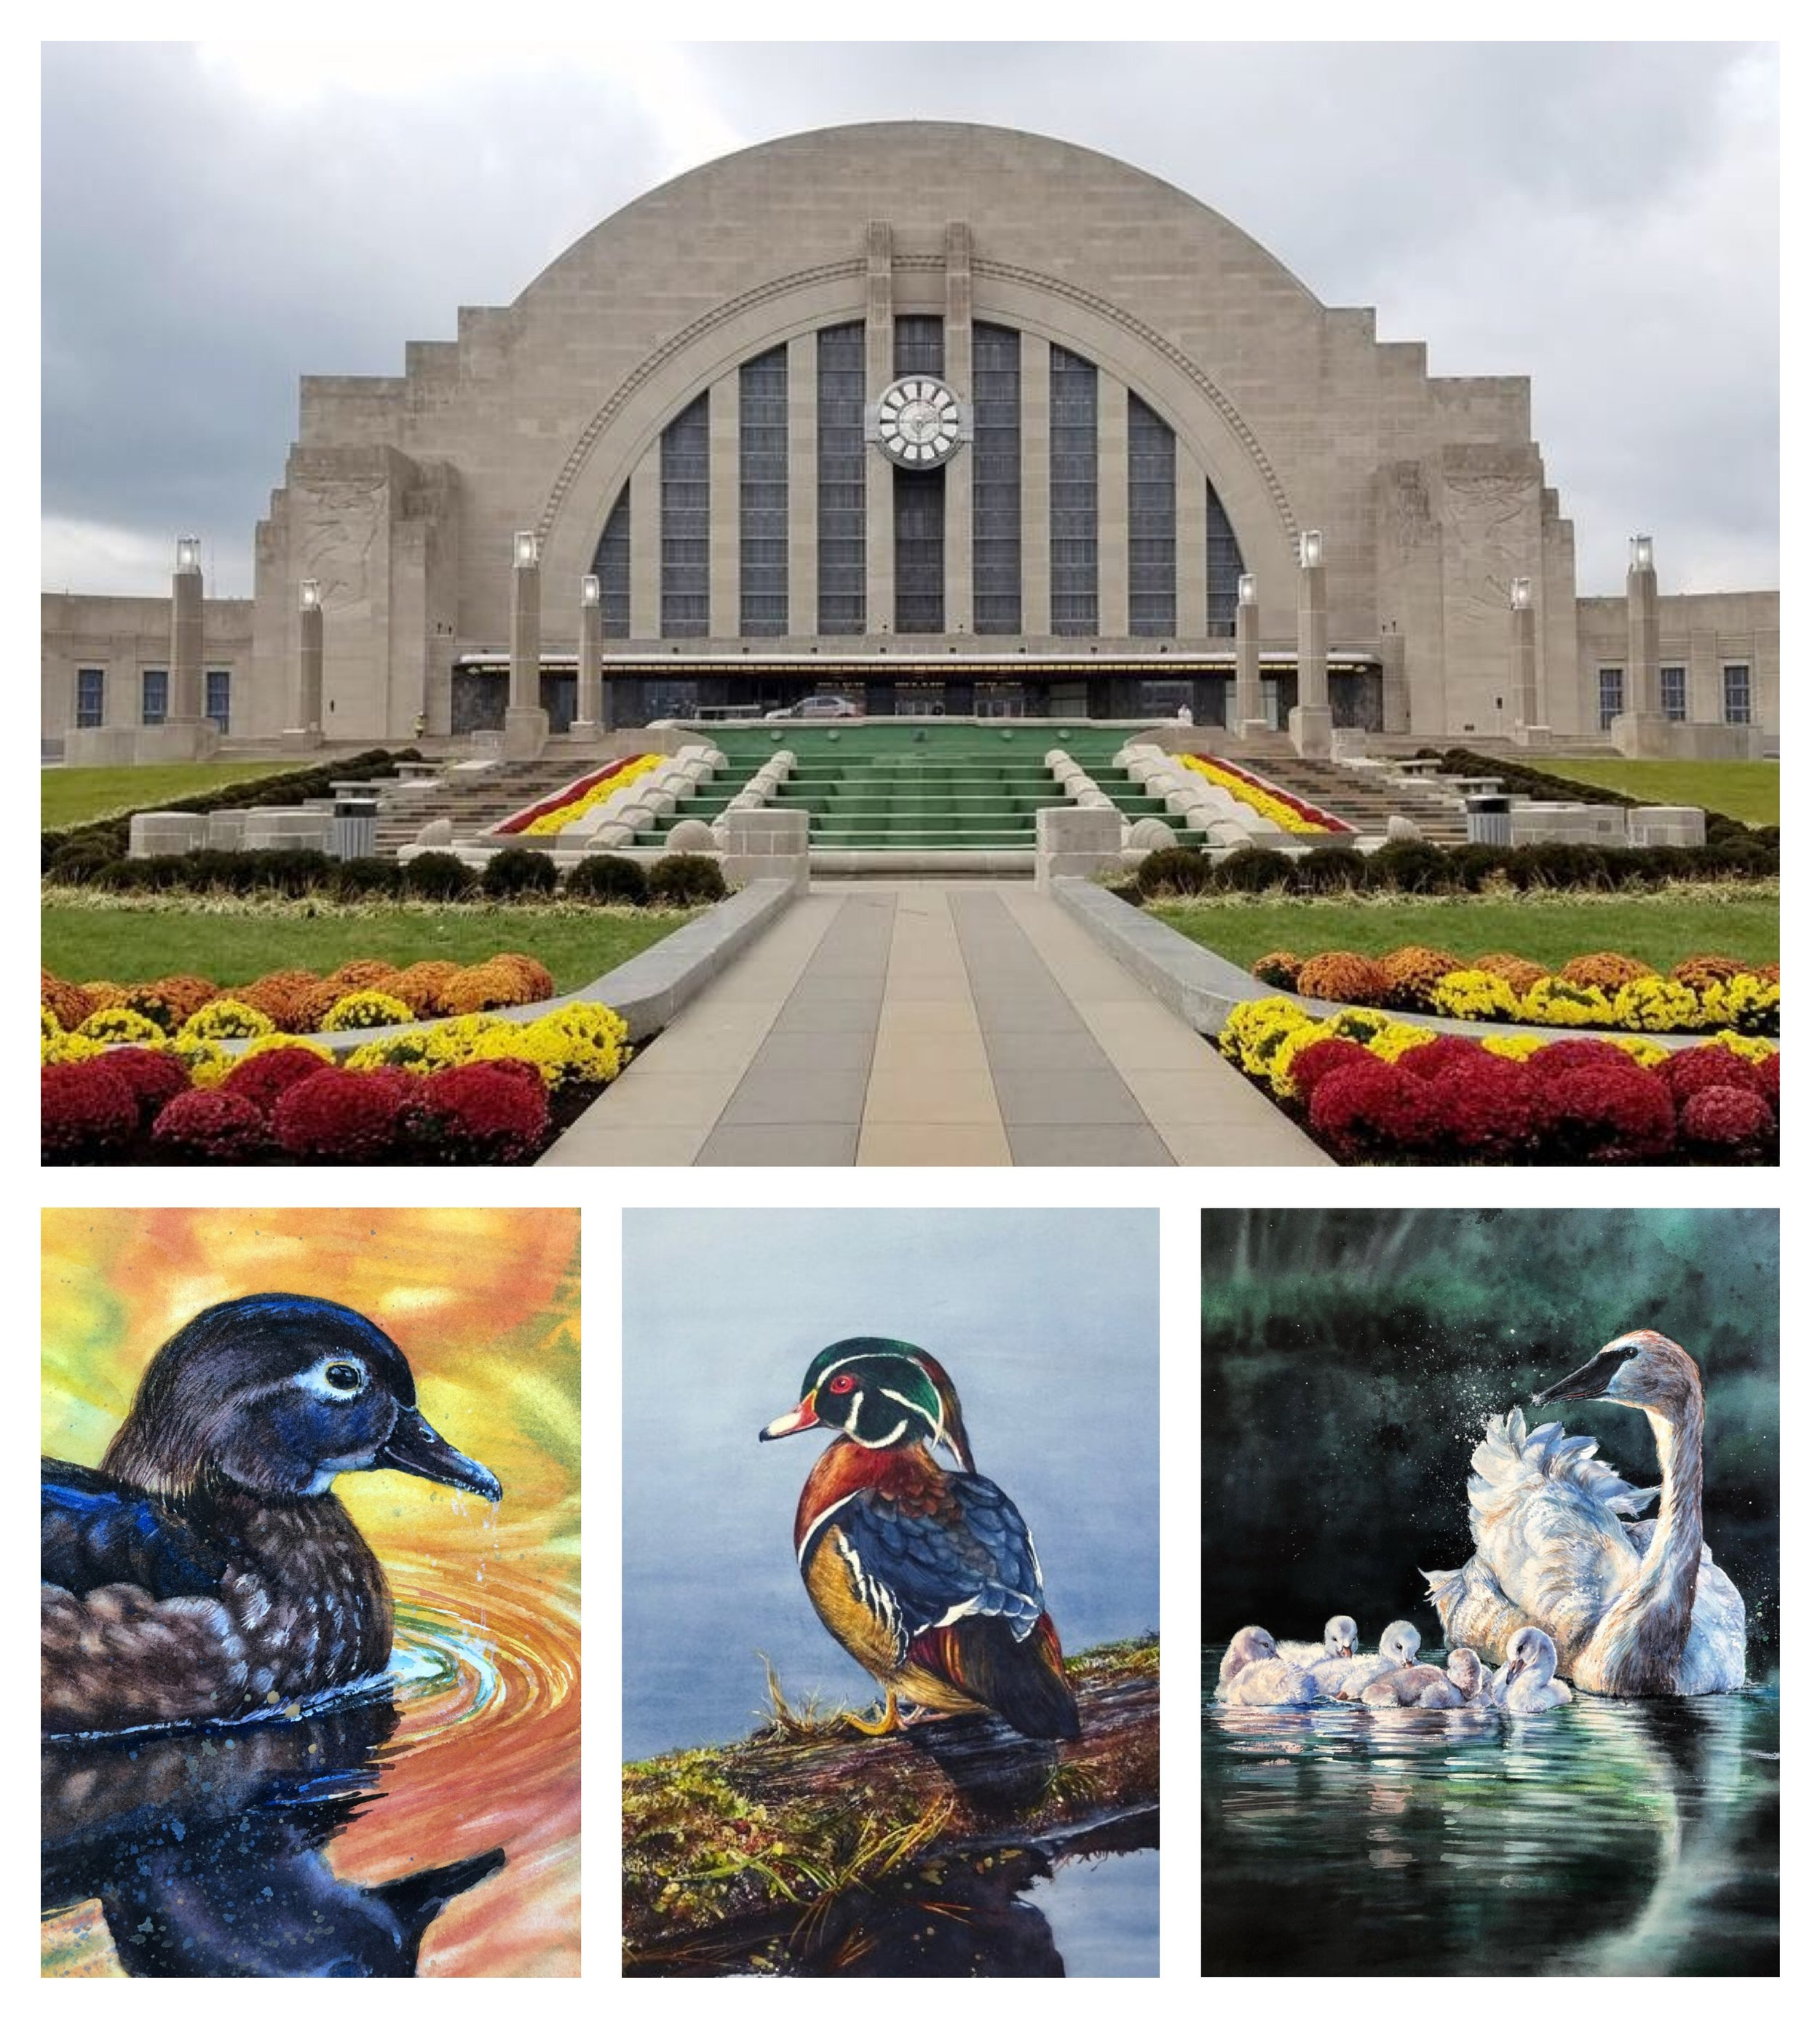 In the Audubon Tradition… - 3 of my pieces will be exhibited at the the newly renovated Cincinnati Museum Center which is celebrating the 200th anniversary of its Museum of Natural History & Science. Founded in 1818 as the Western History Society, its doors opened in 1820. Its first employee was famed naturalist and artist, John James Audubon.Honouring the Legacy of John James Audubon. Featuring 75 - 100 of the top North American Bird & Wild. Being heralded as 2019's most prestigious/important event in the museum history. The 200th Anniversary of CMC celebrates the marriage of art and science.Exhibition Dates: September 12-25th 2019Location:Cincinnati Museum Center1301 Western Avenue Cincinnati Oh 4520